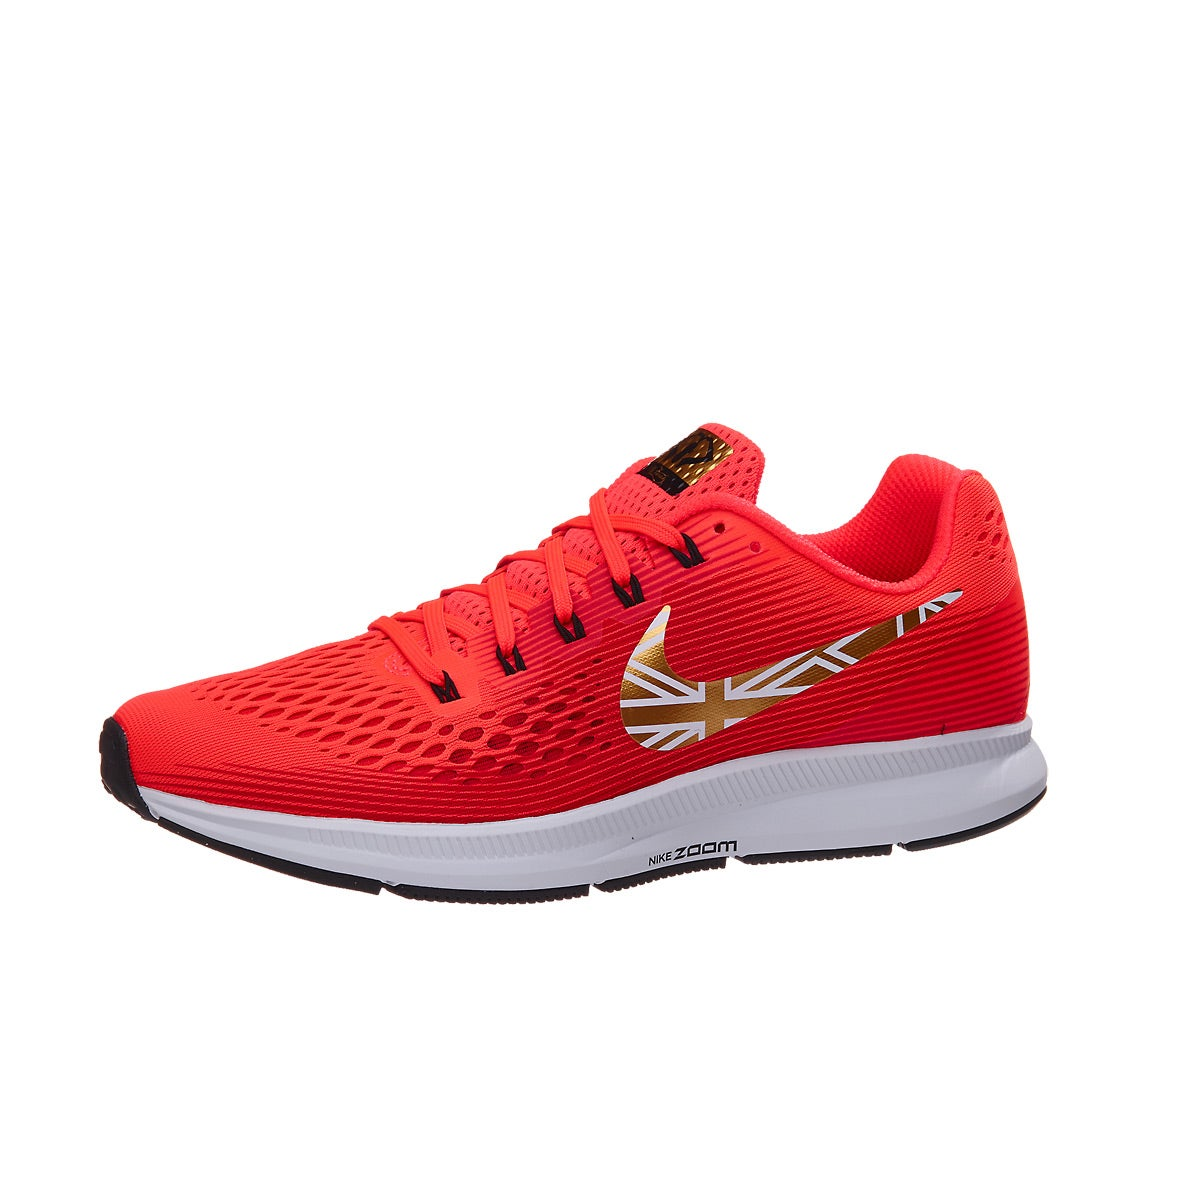 91fc866ce52e5 ... where can i buy nike zoom pegasus 34 mens shoes mo farah 360 view  running warehouse